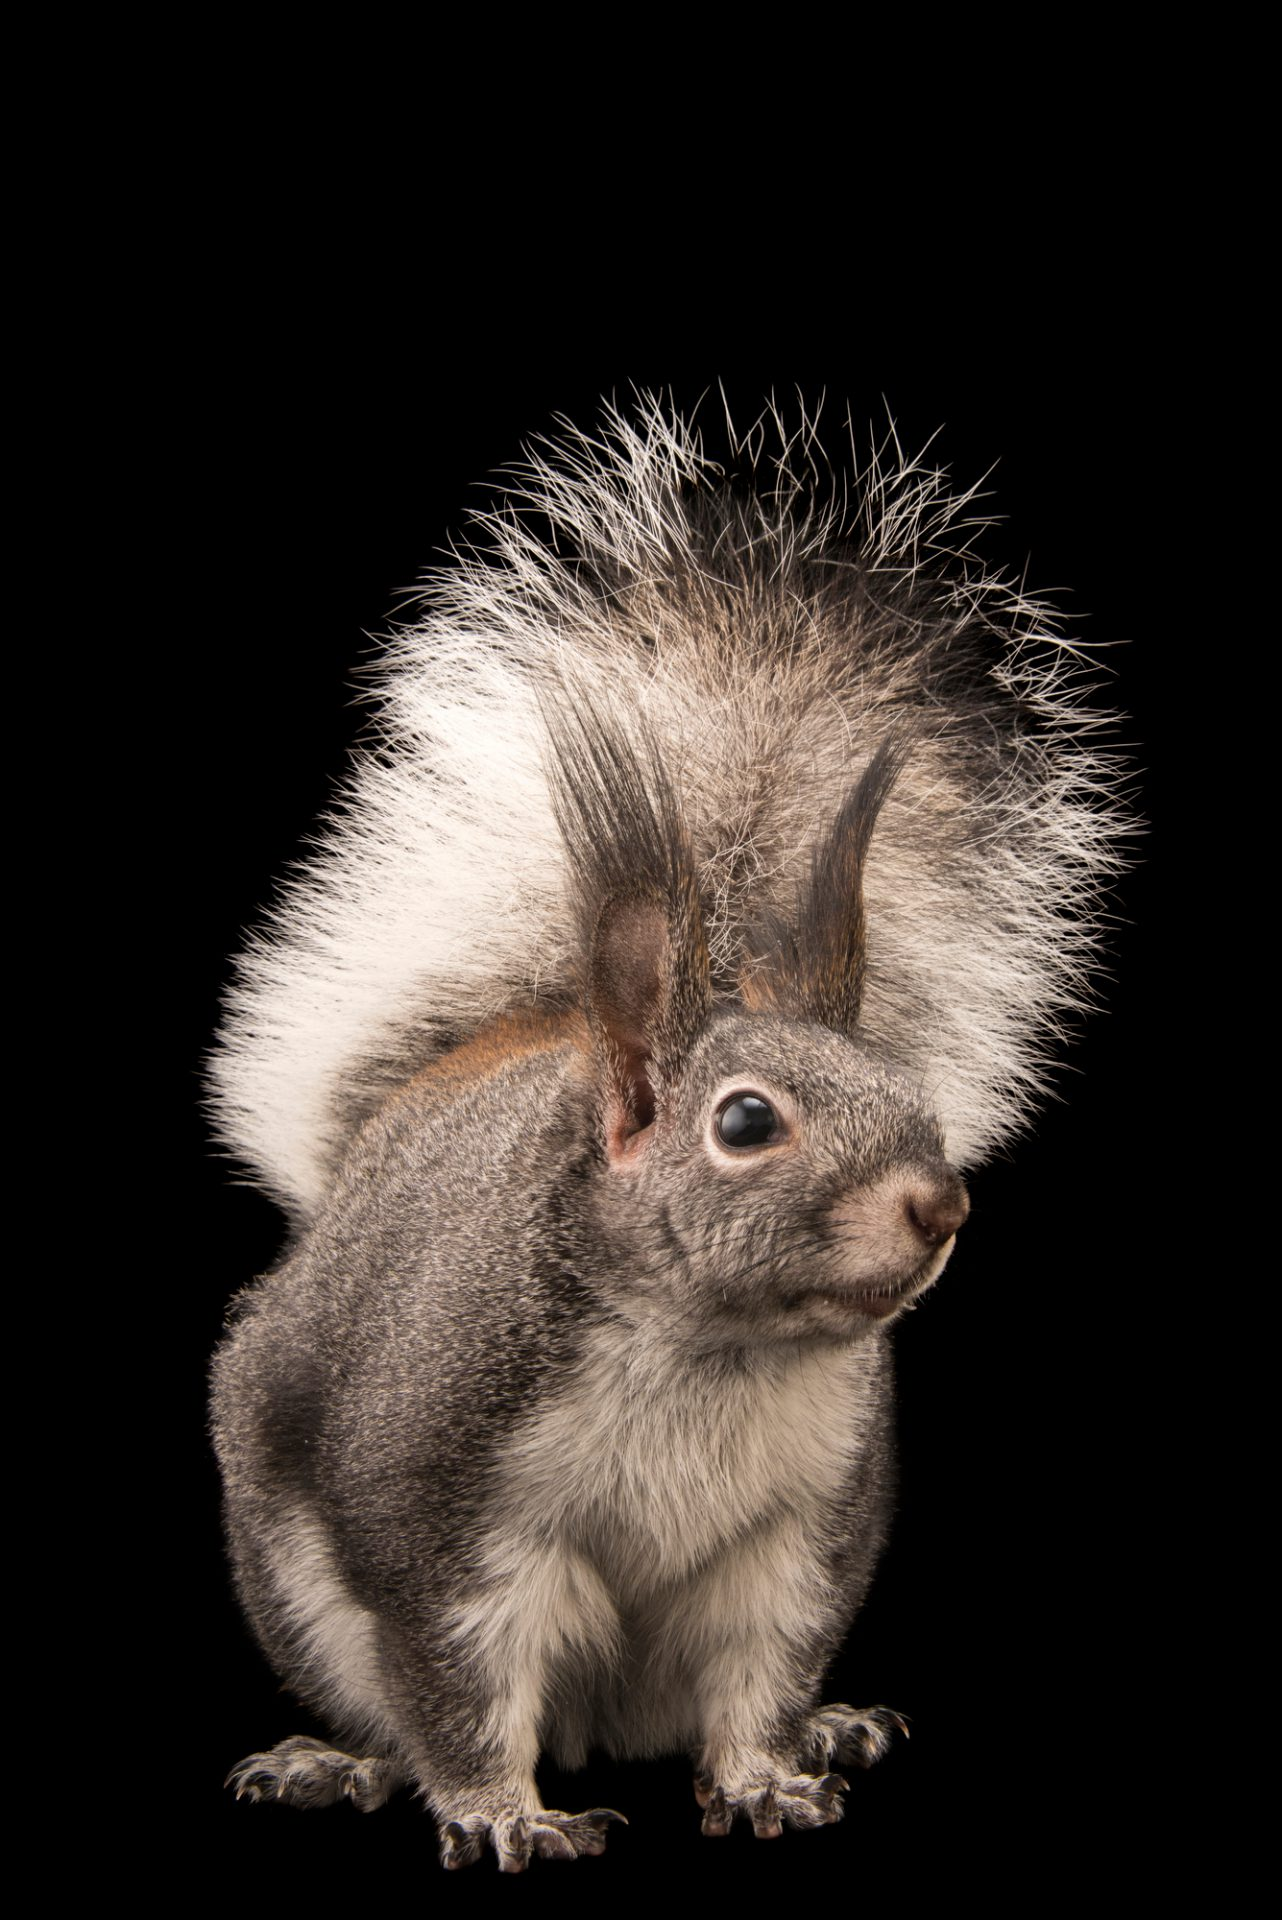 Photo: Abert's squirrel or tassel-eared squirrel (Sciurus aberti) at Liberty Wildlife.